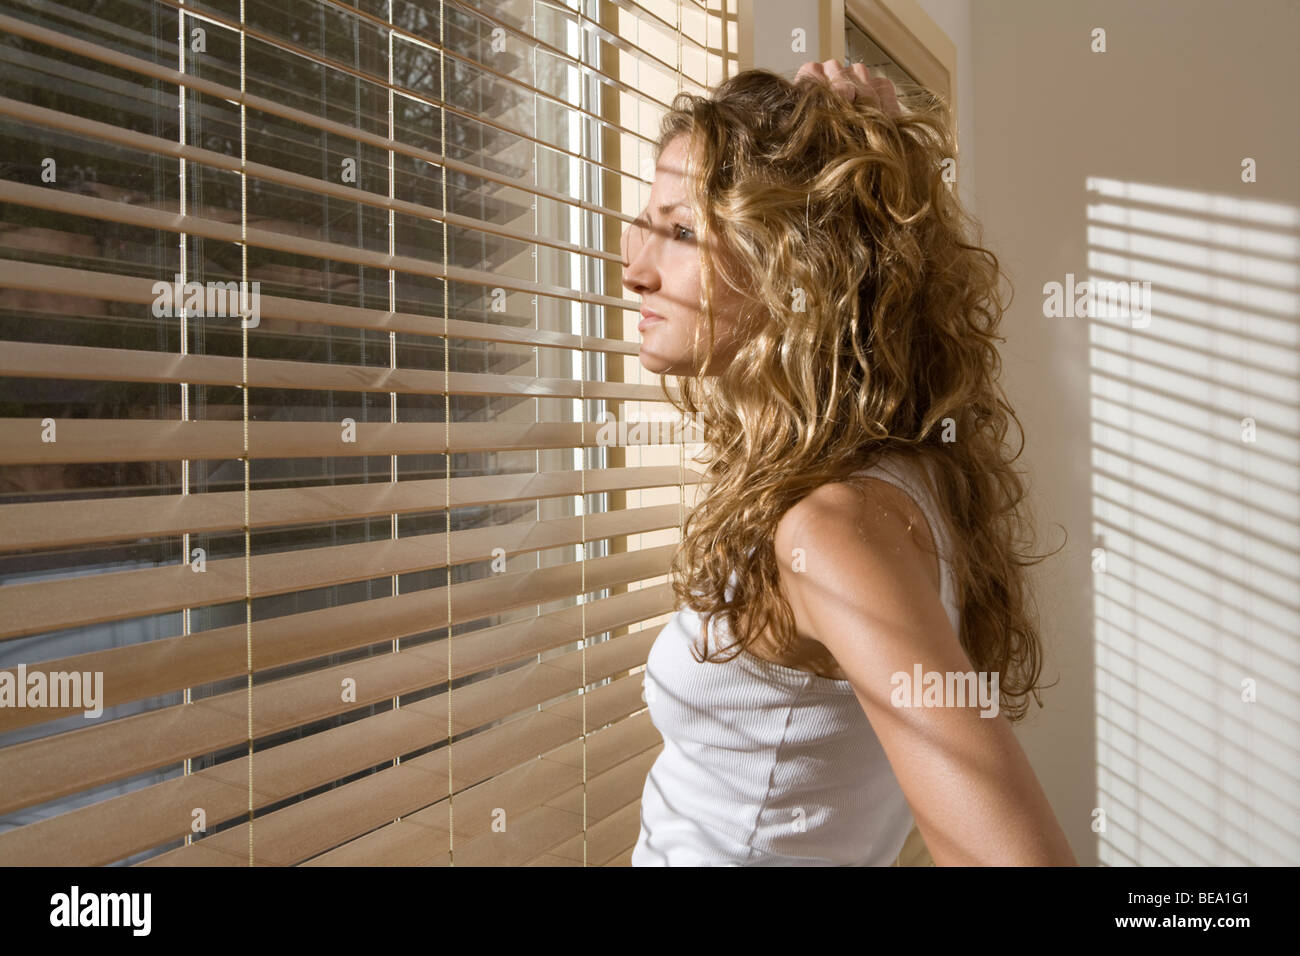 Curious woman in bedroom peering through blinds in morning - Stock Image